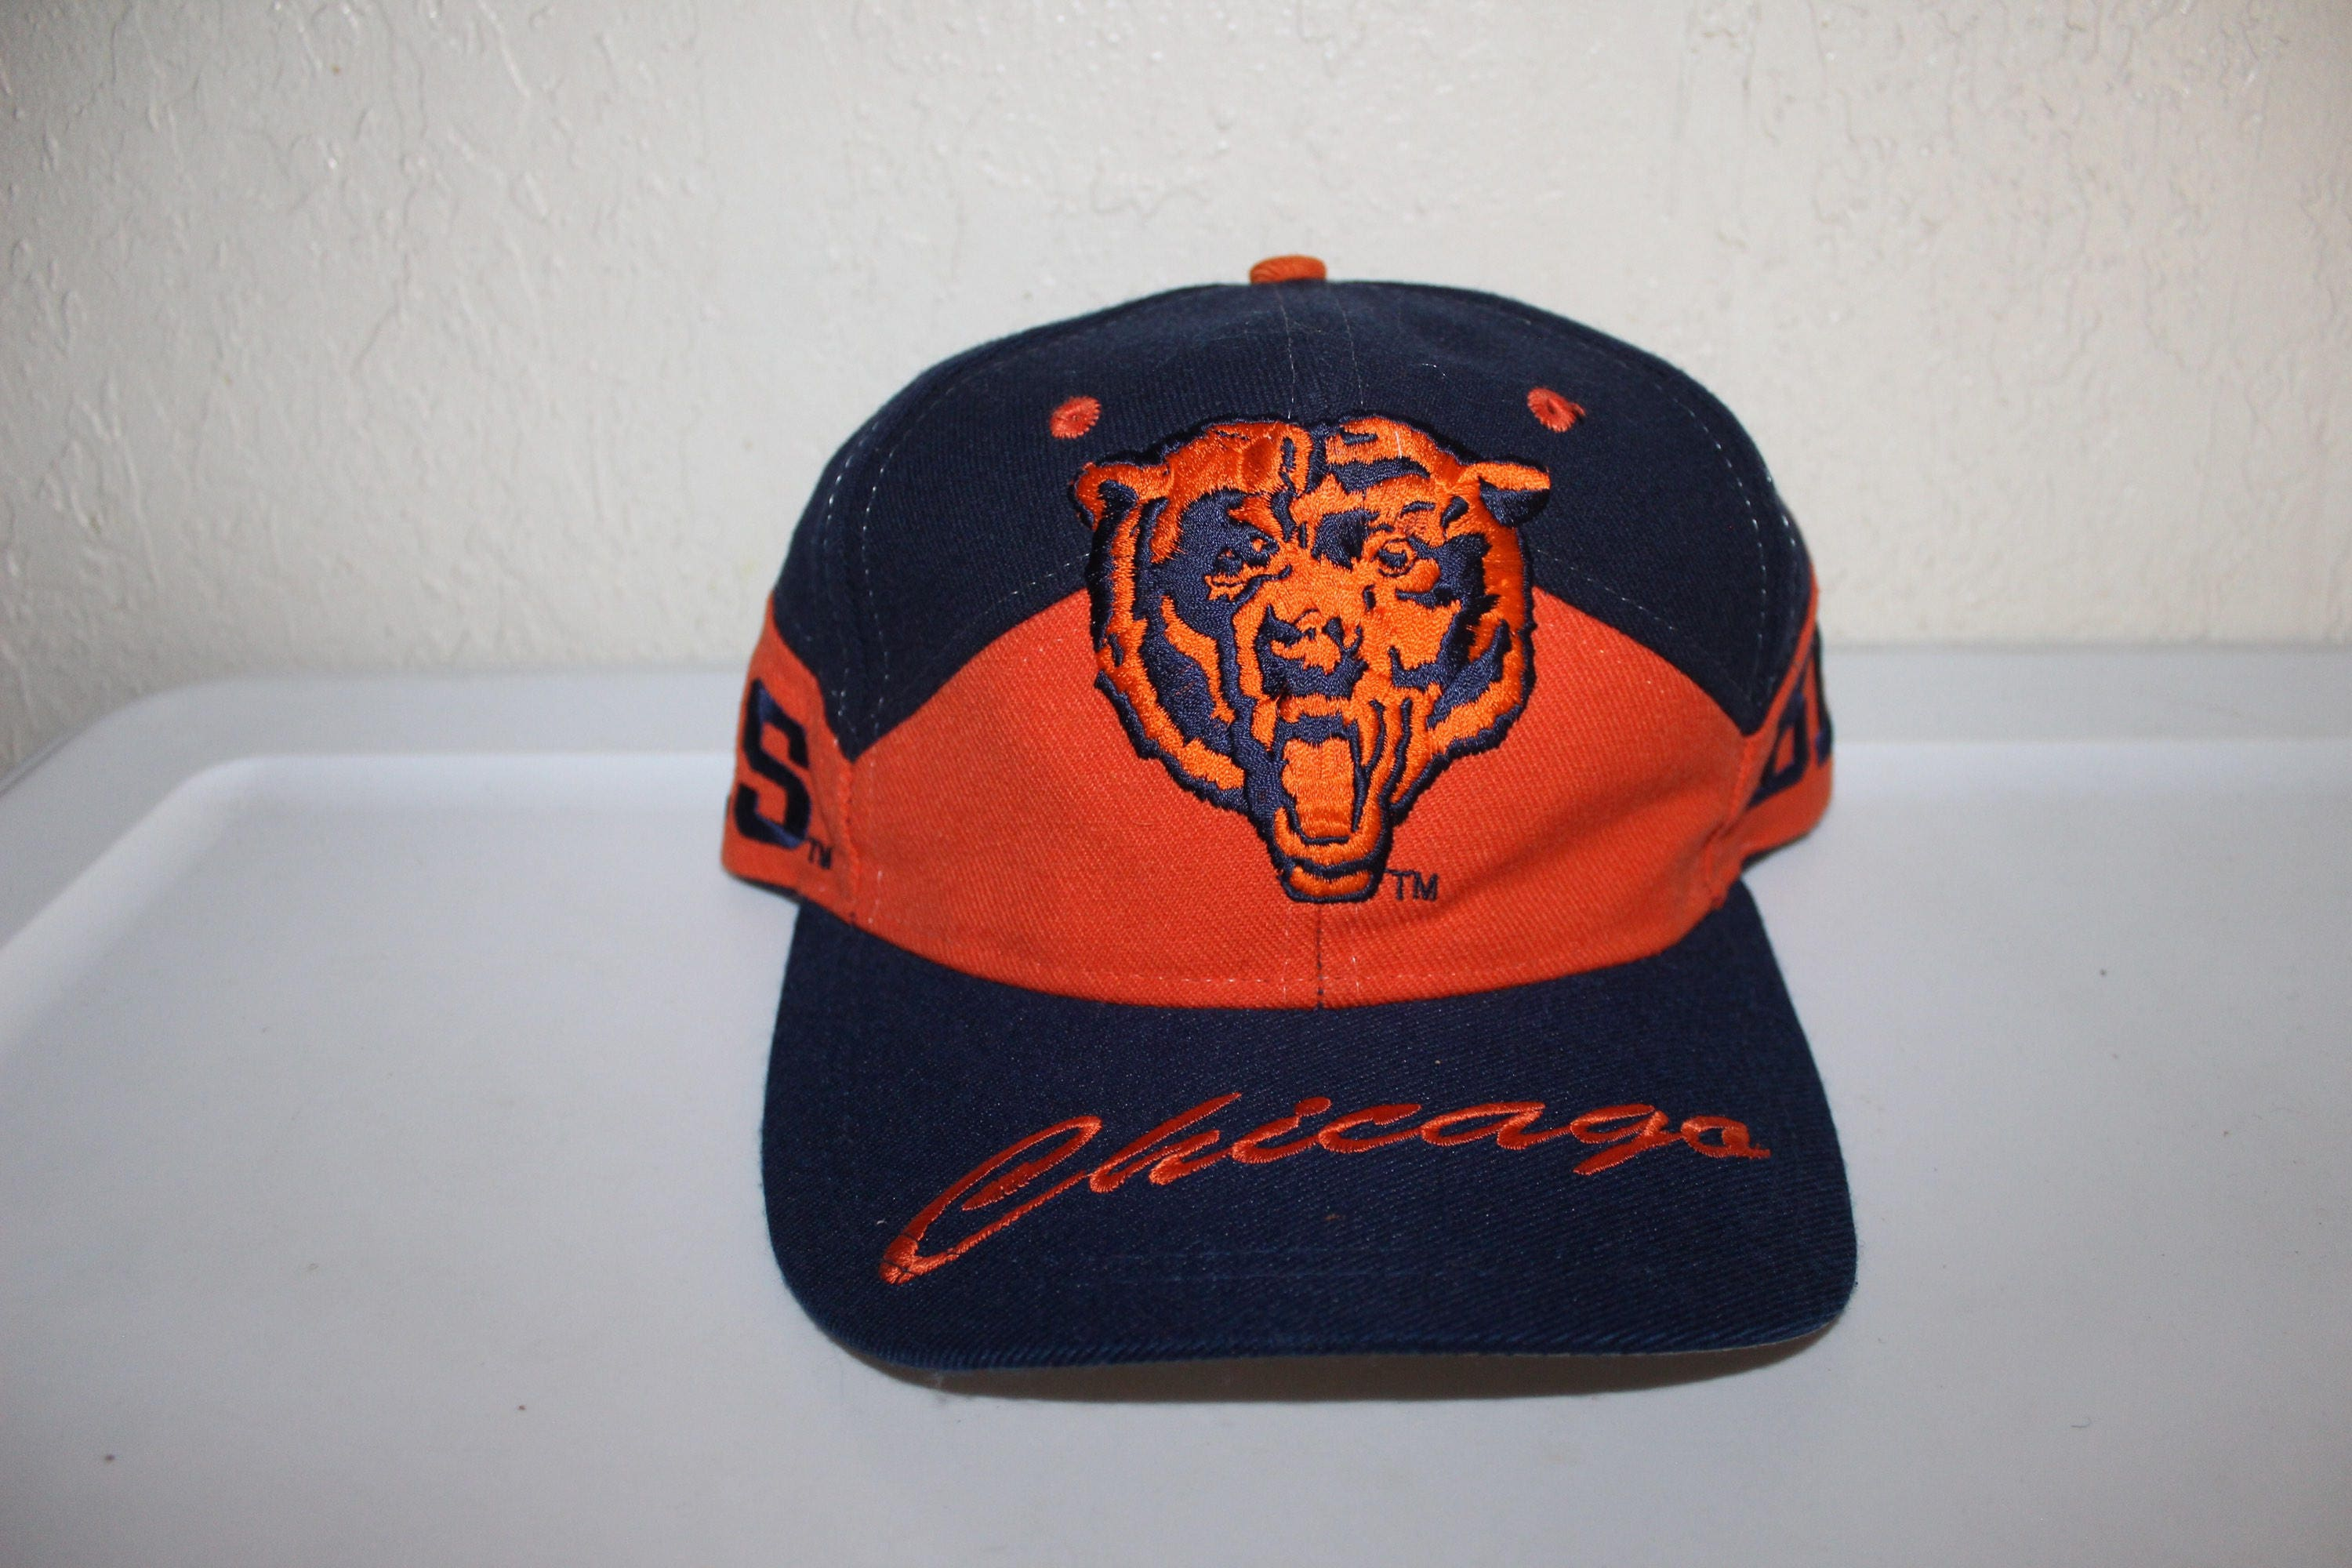 ... NFL Total Reflective 59FIFTY Cap Vintage 90s Chicago Bears Snapback by  Drew Pearson ... d71e242f3056